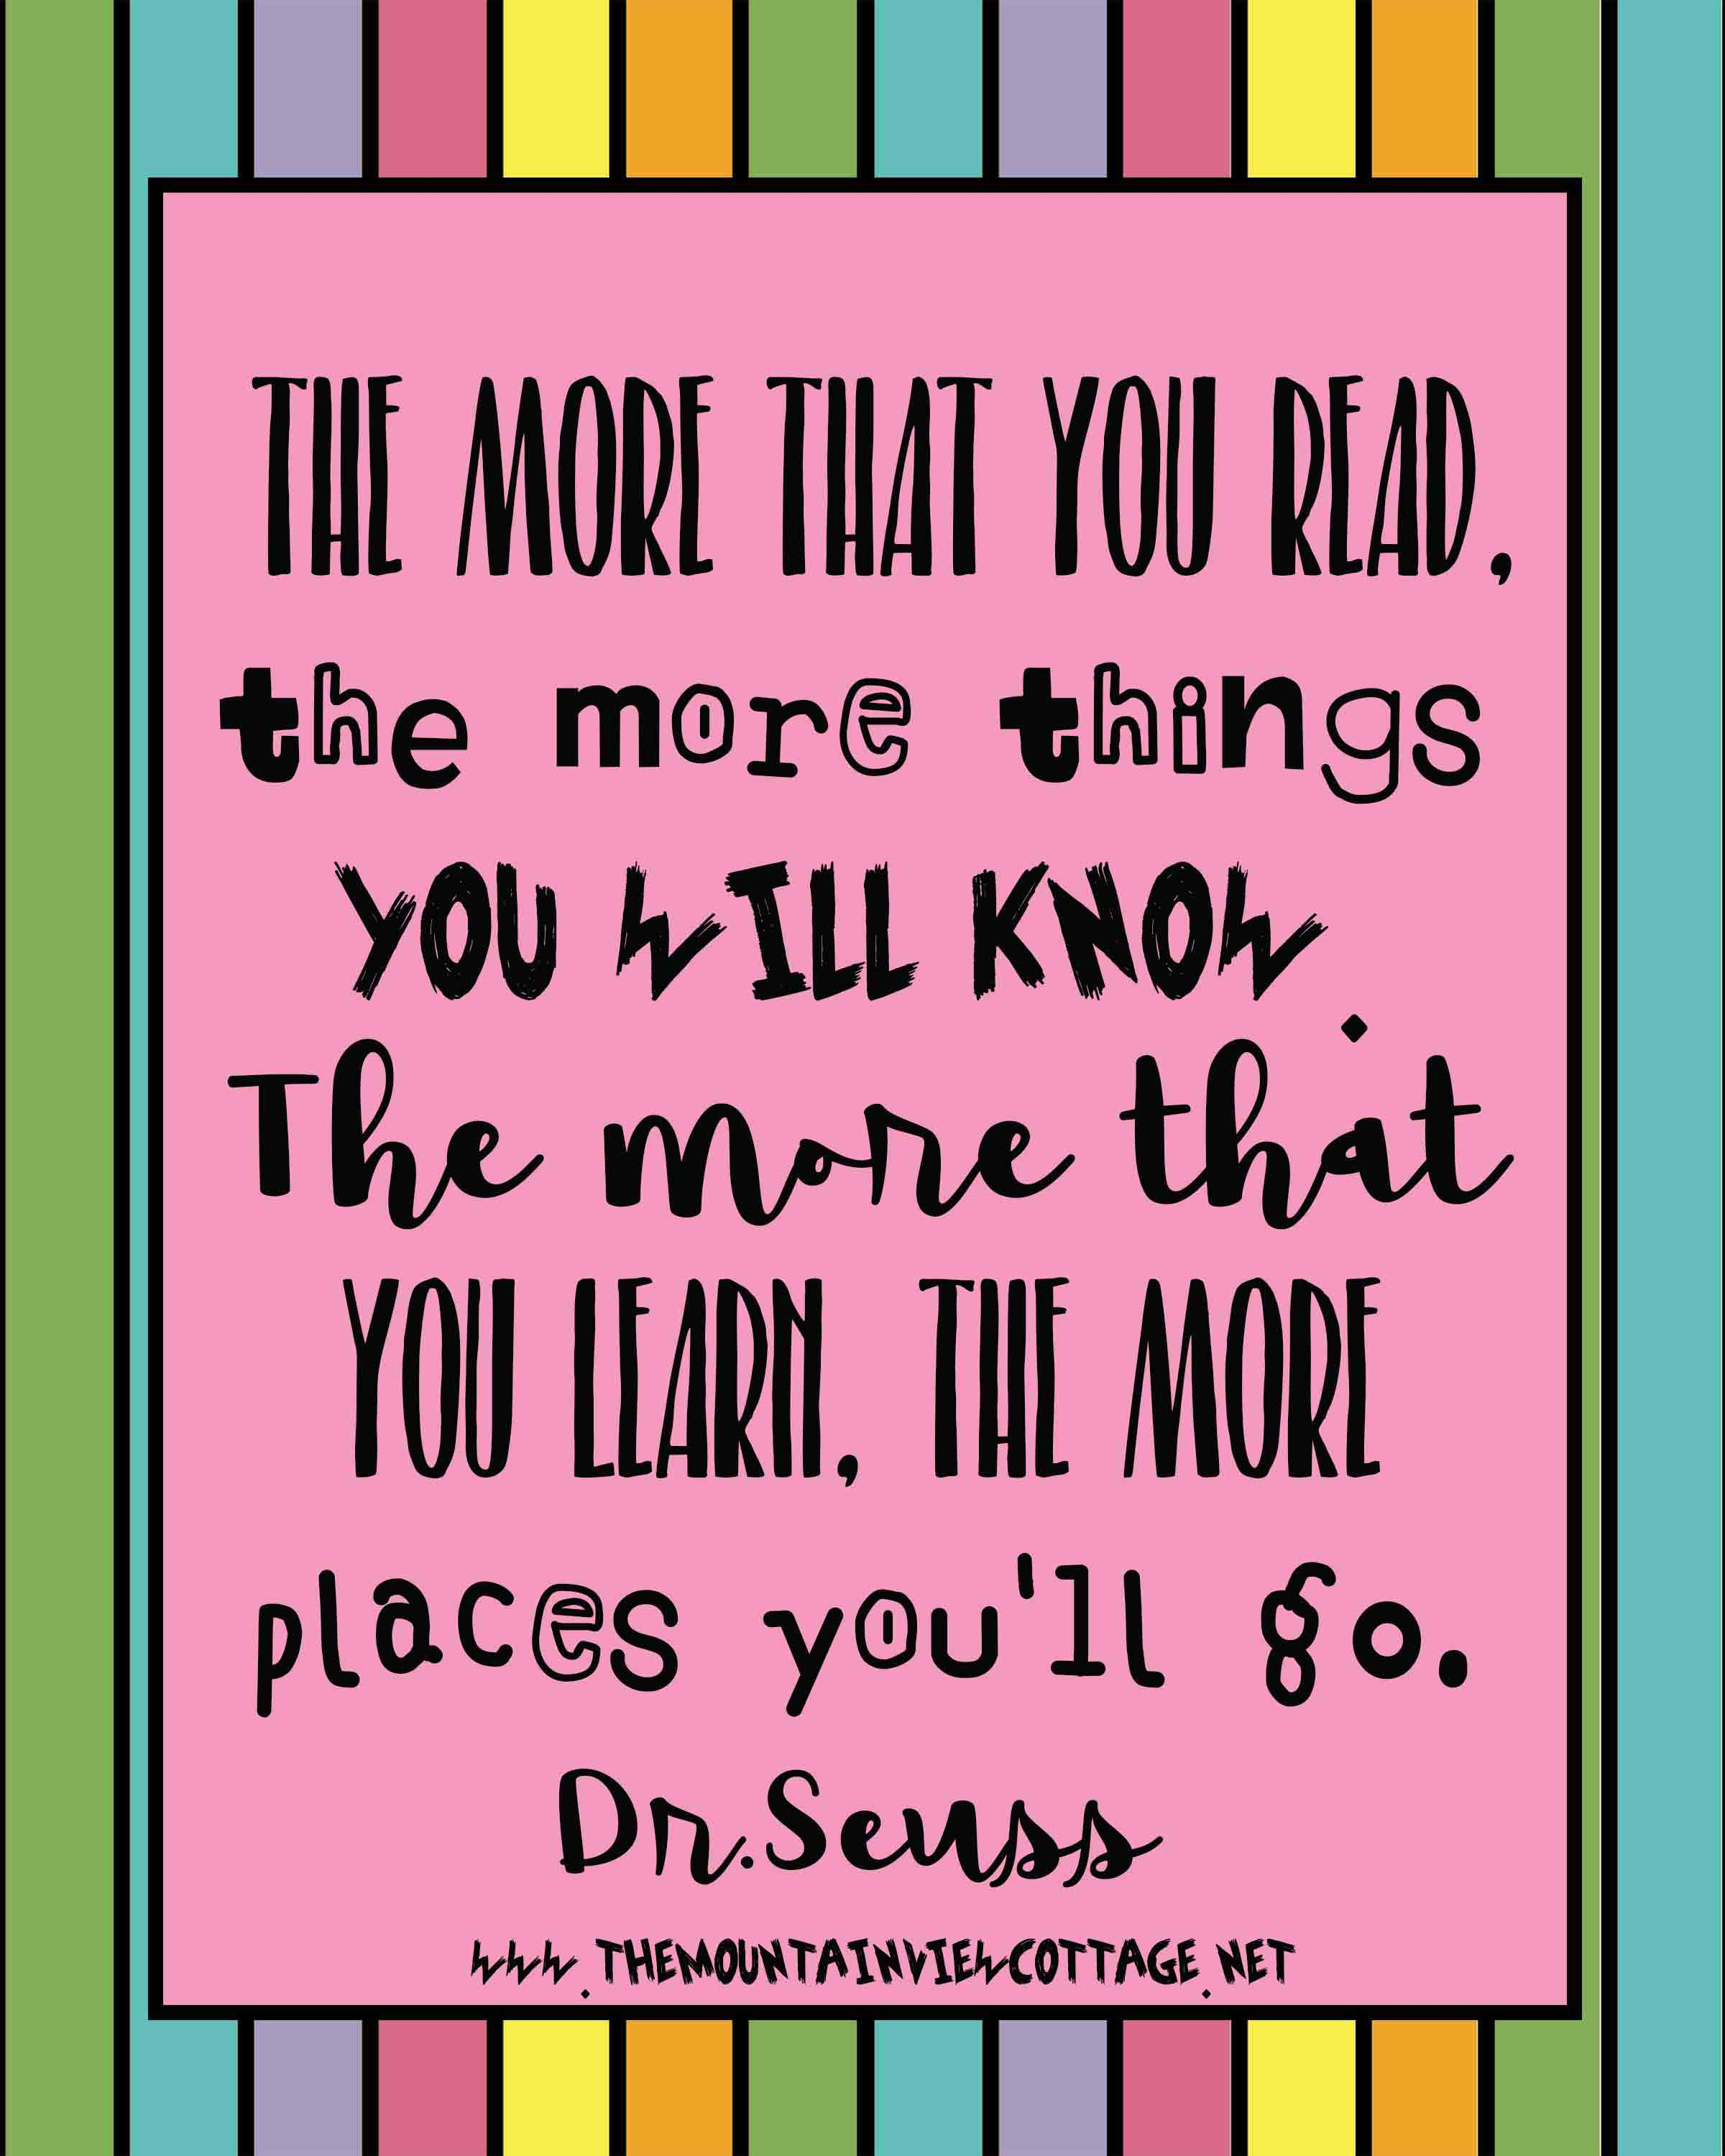 graphic about Printable Dr Seuss Quotes identify 21 Extraordinary Dr.Seuss Quotations - The Mountain Check out Cottage